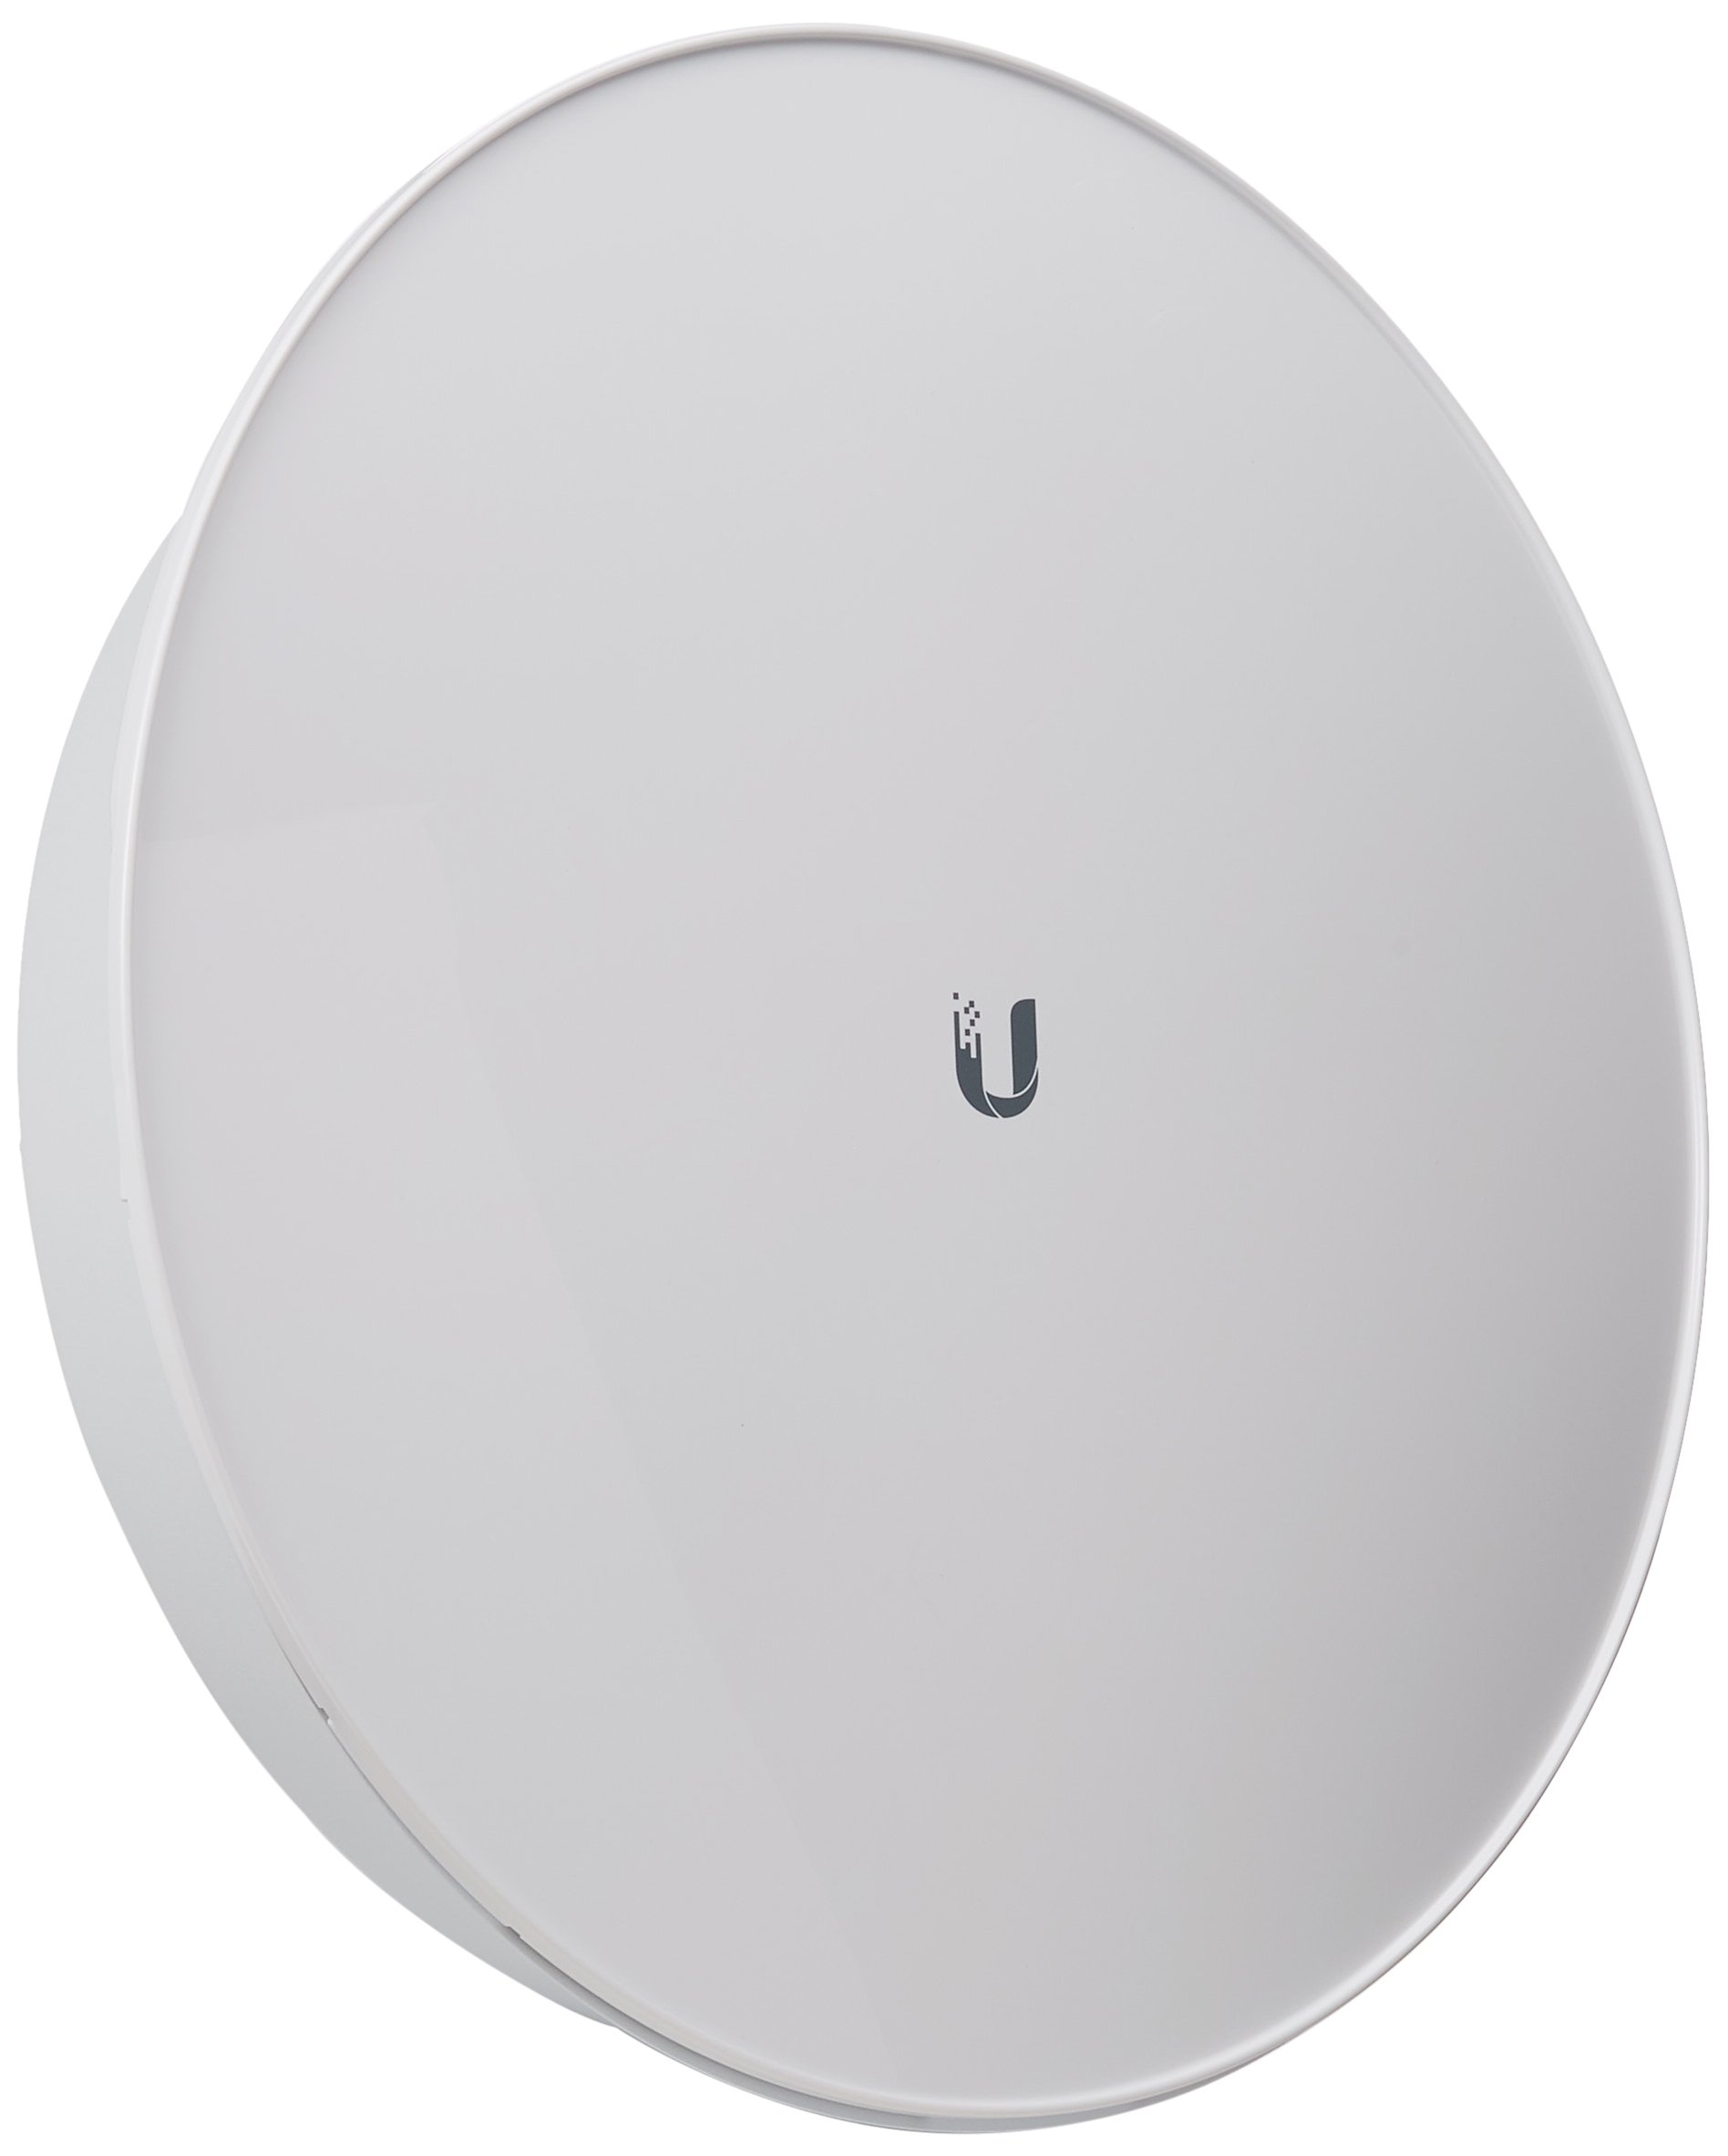 Ubiquiti PowerBeam AC PBE-5AC-500-ISO  IEEE 802.11ac Wireless Bridge  2 Pack by Ubiquiti Networks